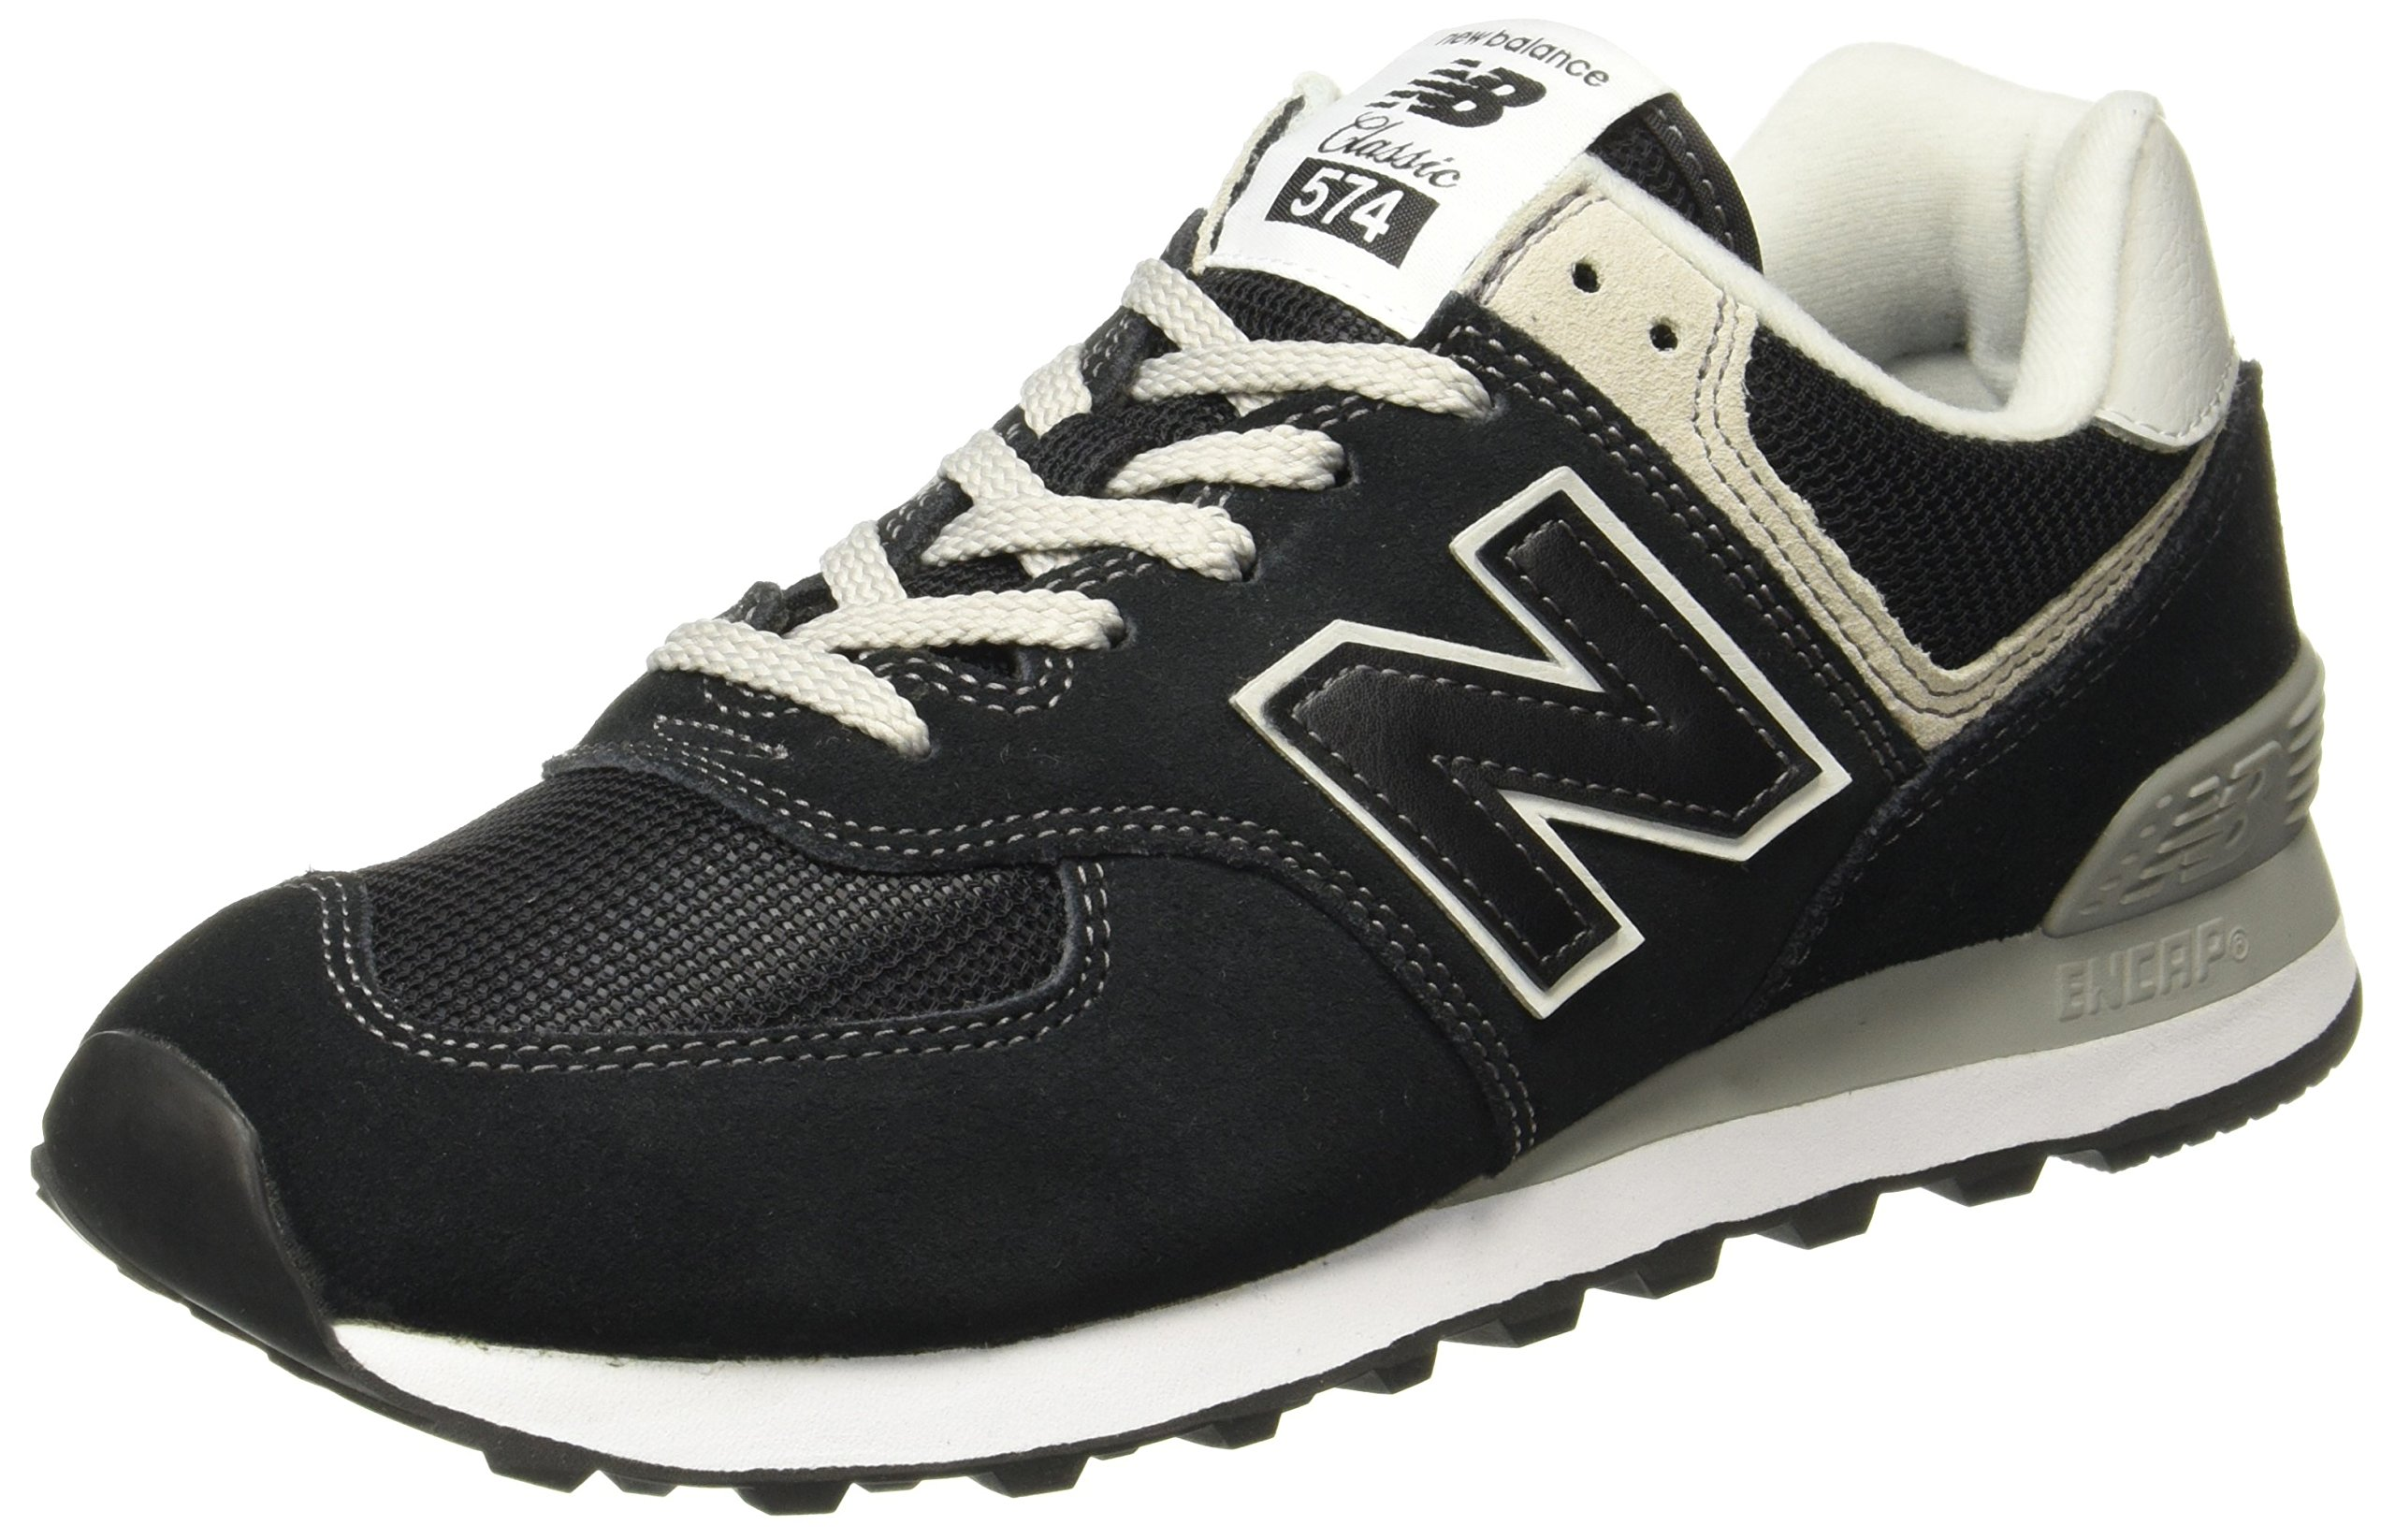 20288b985bf Galleon - New Balance Women s 574 Core Evergreen Lifestyle Sneaker ...